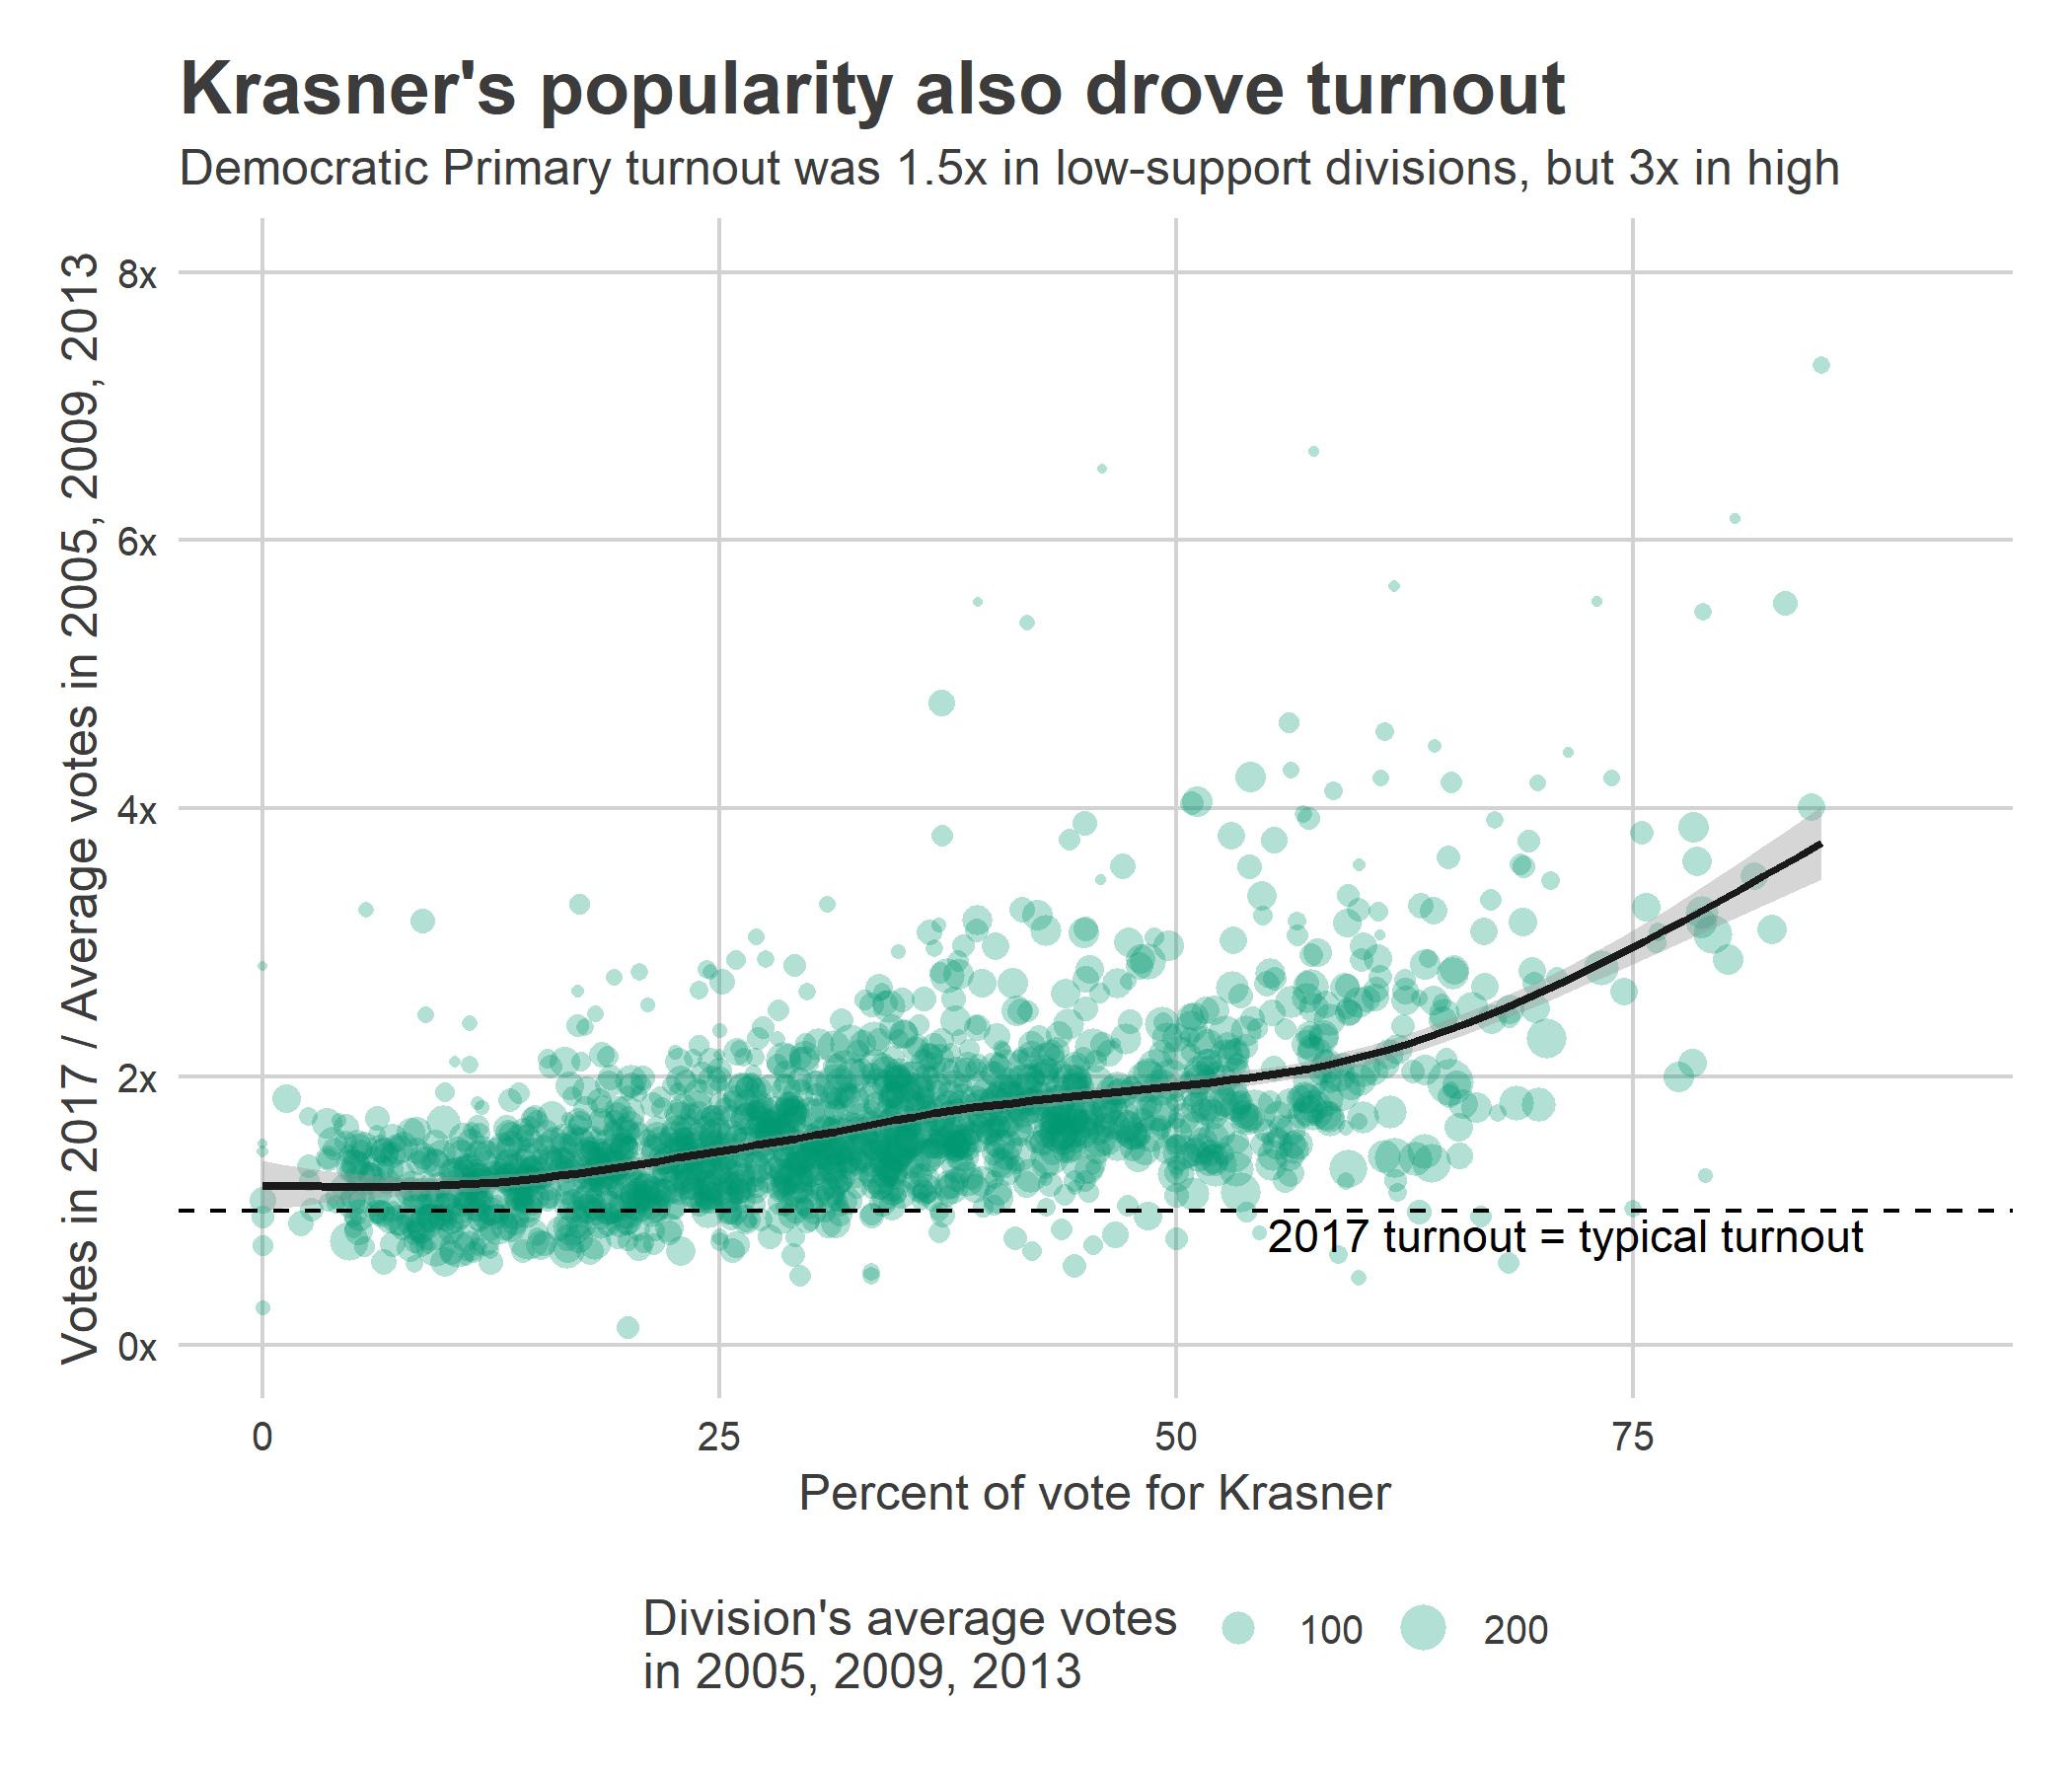 plot of chunk krasner_scatter